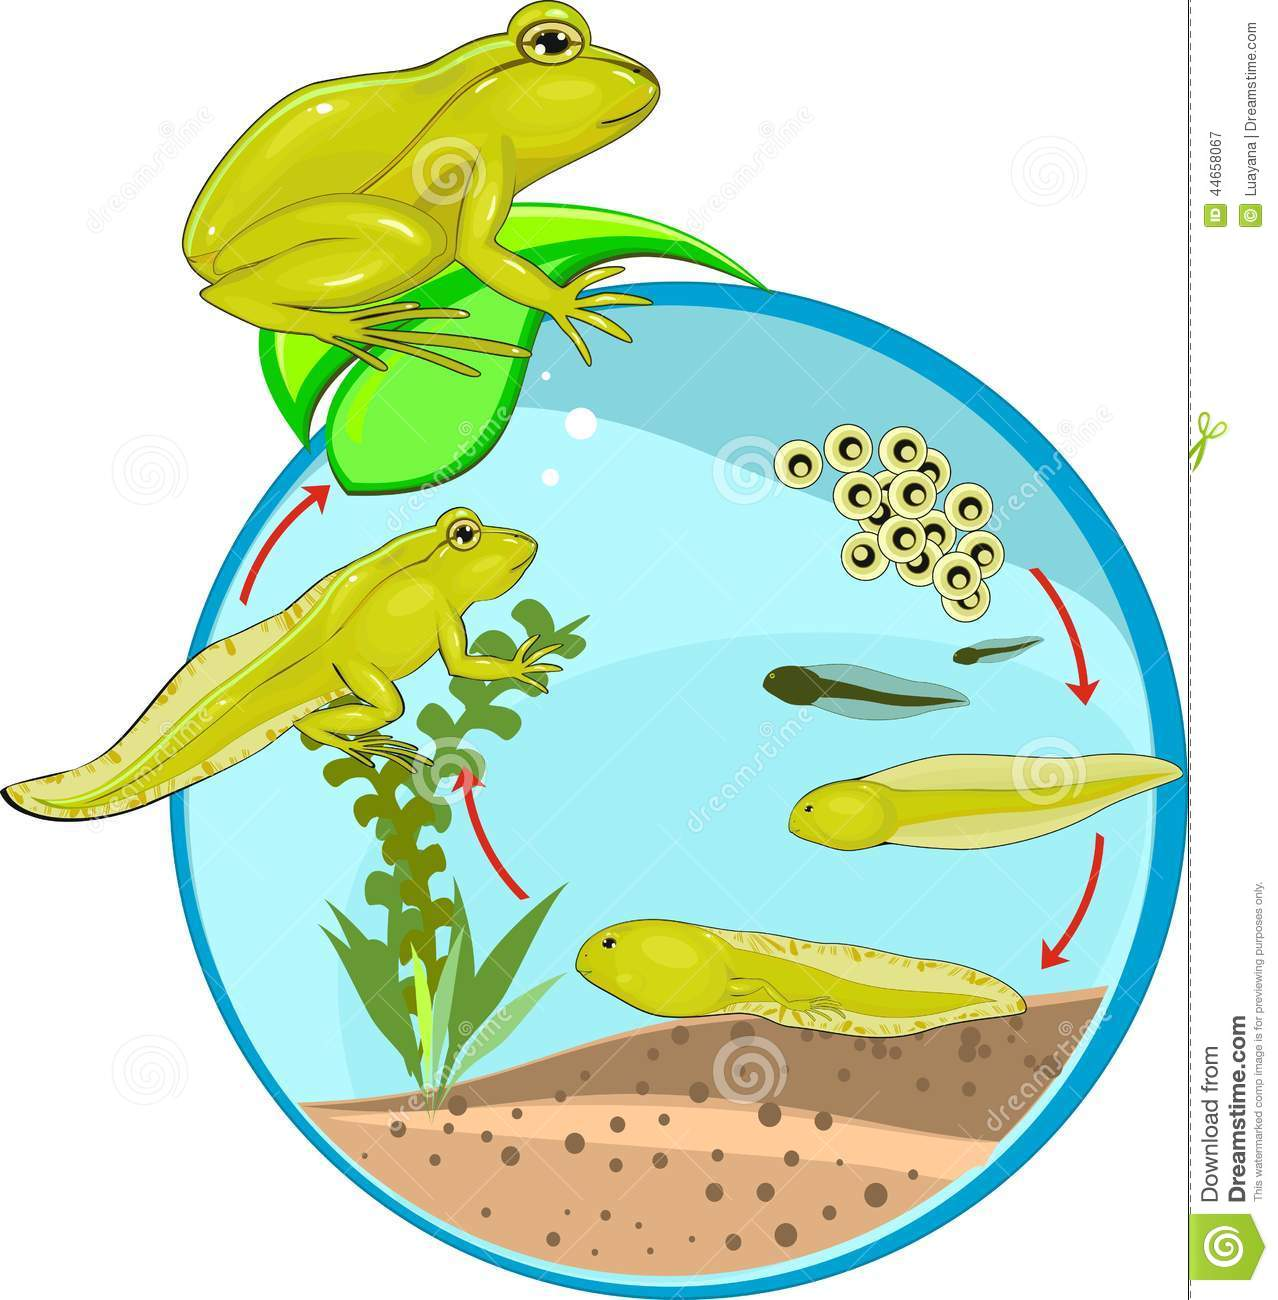 Life cycle of frog stock vector illustration of cycle for Frog transformation